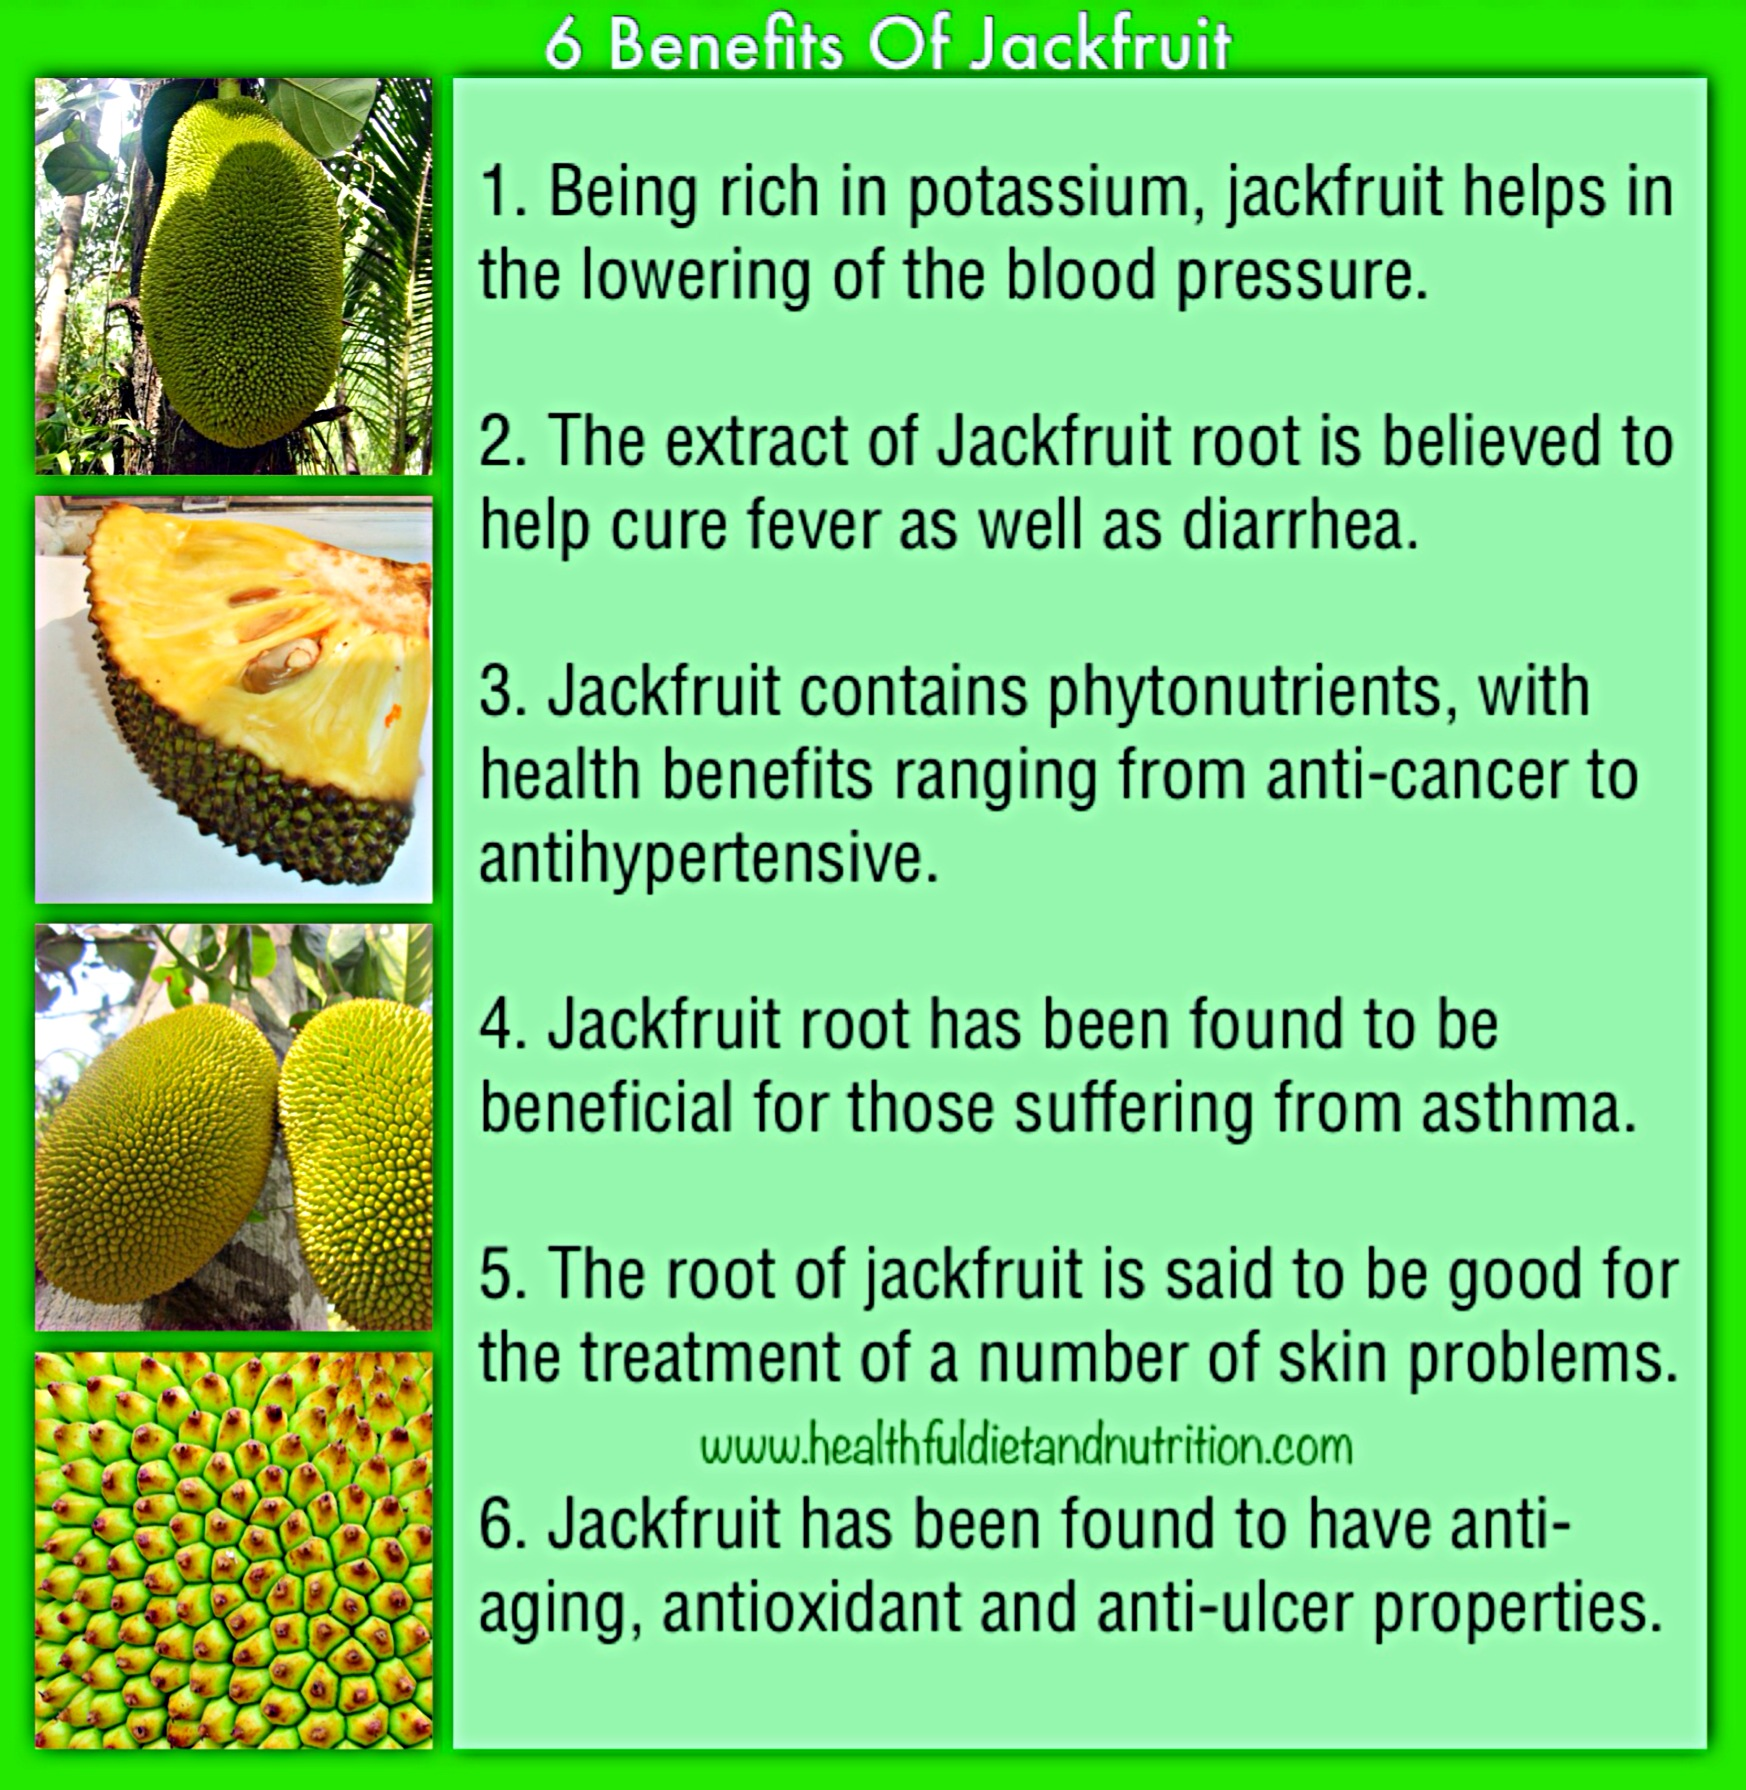 6 Benefits of Jackfruit